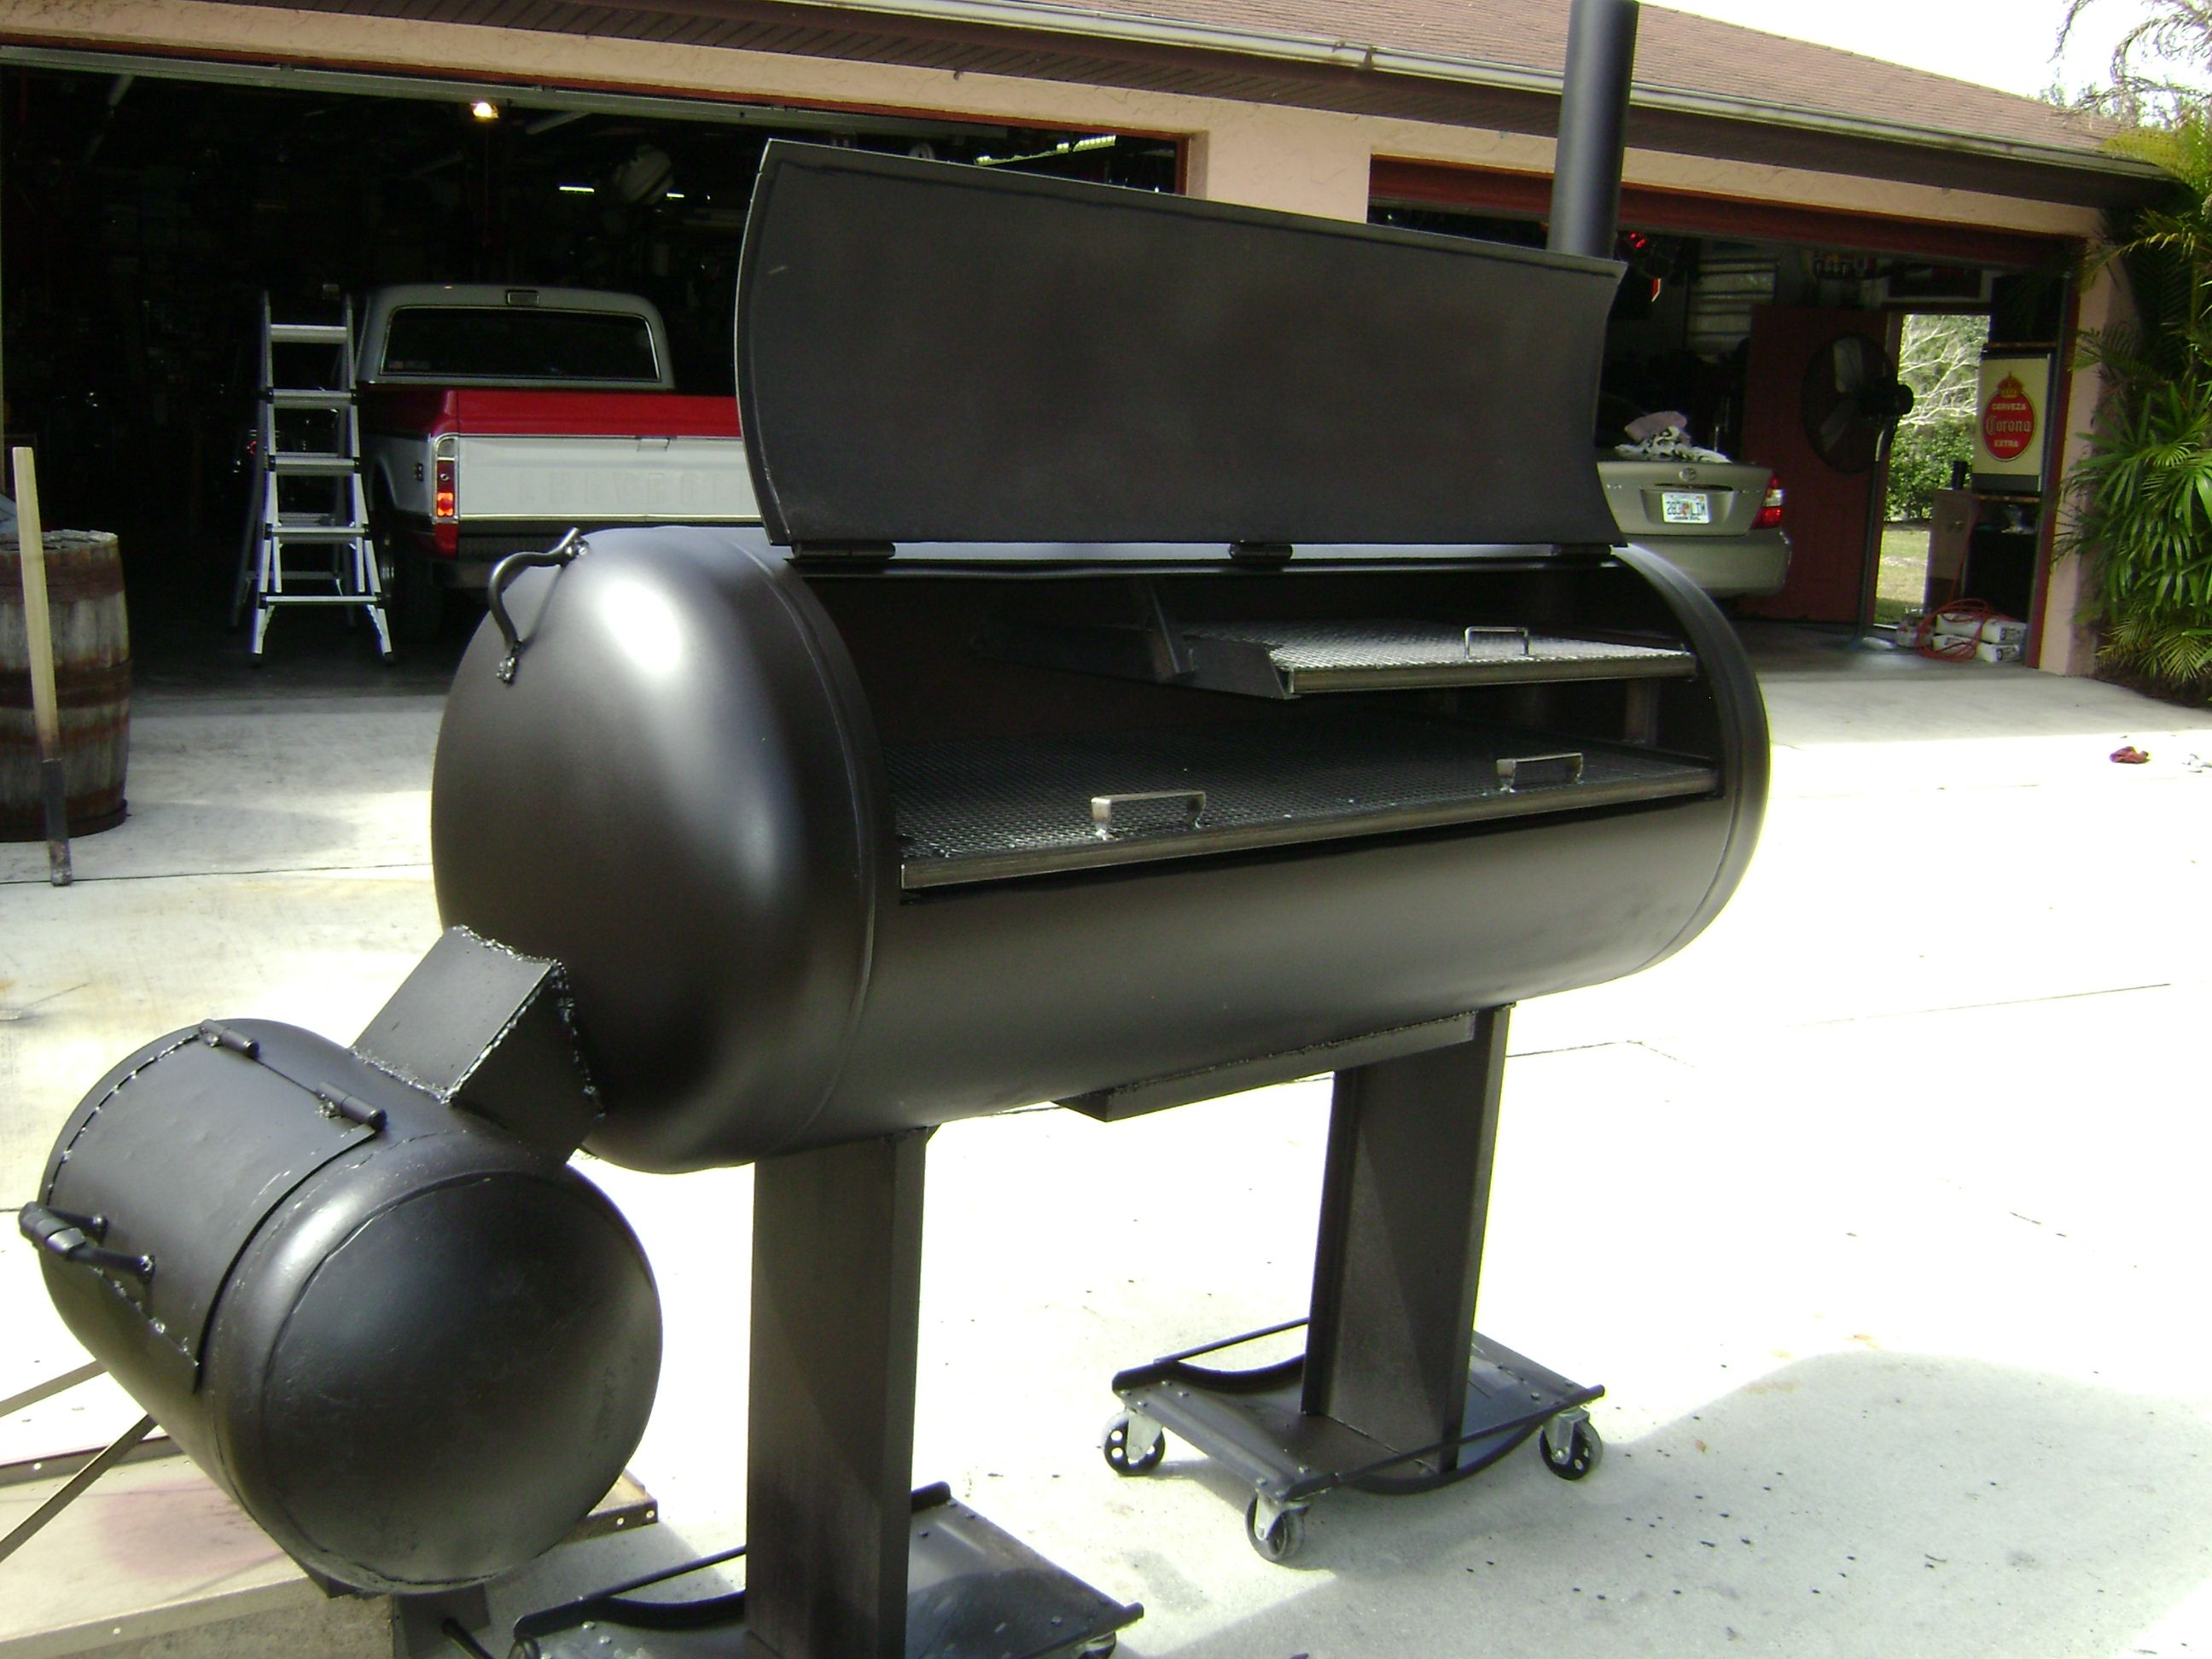 how to put a propane tank on grill